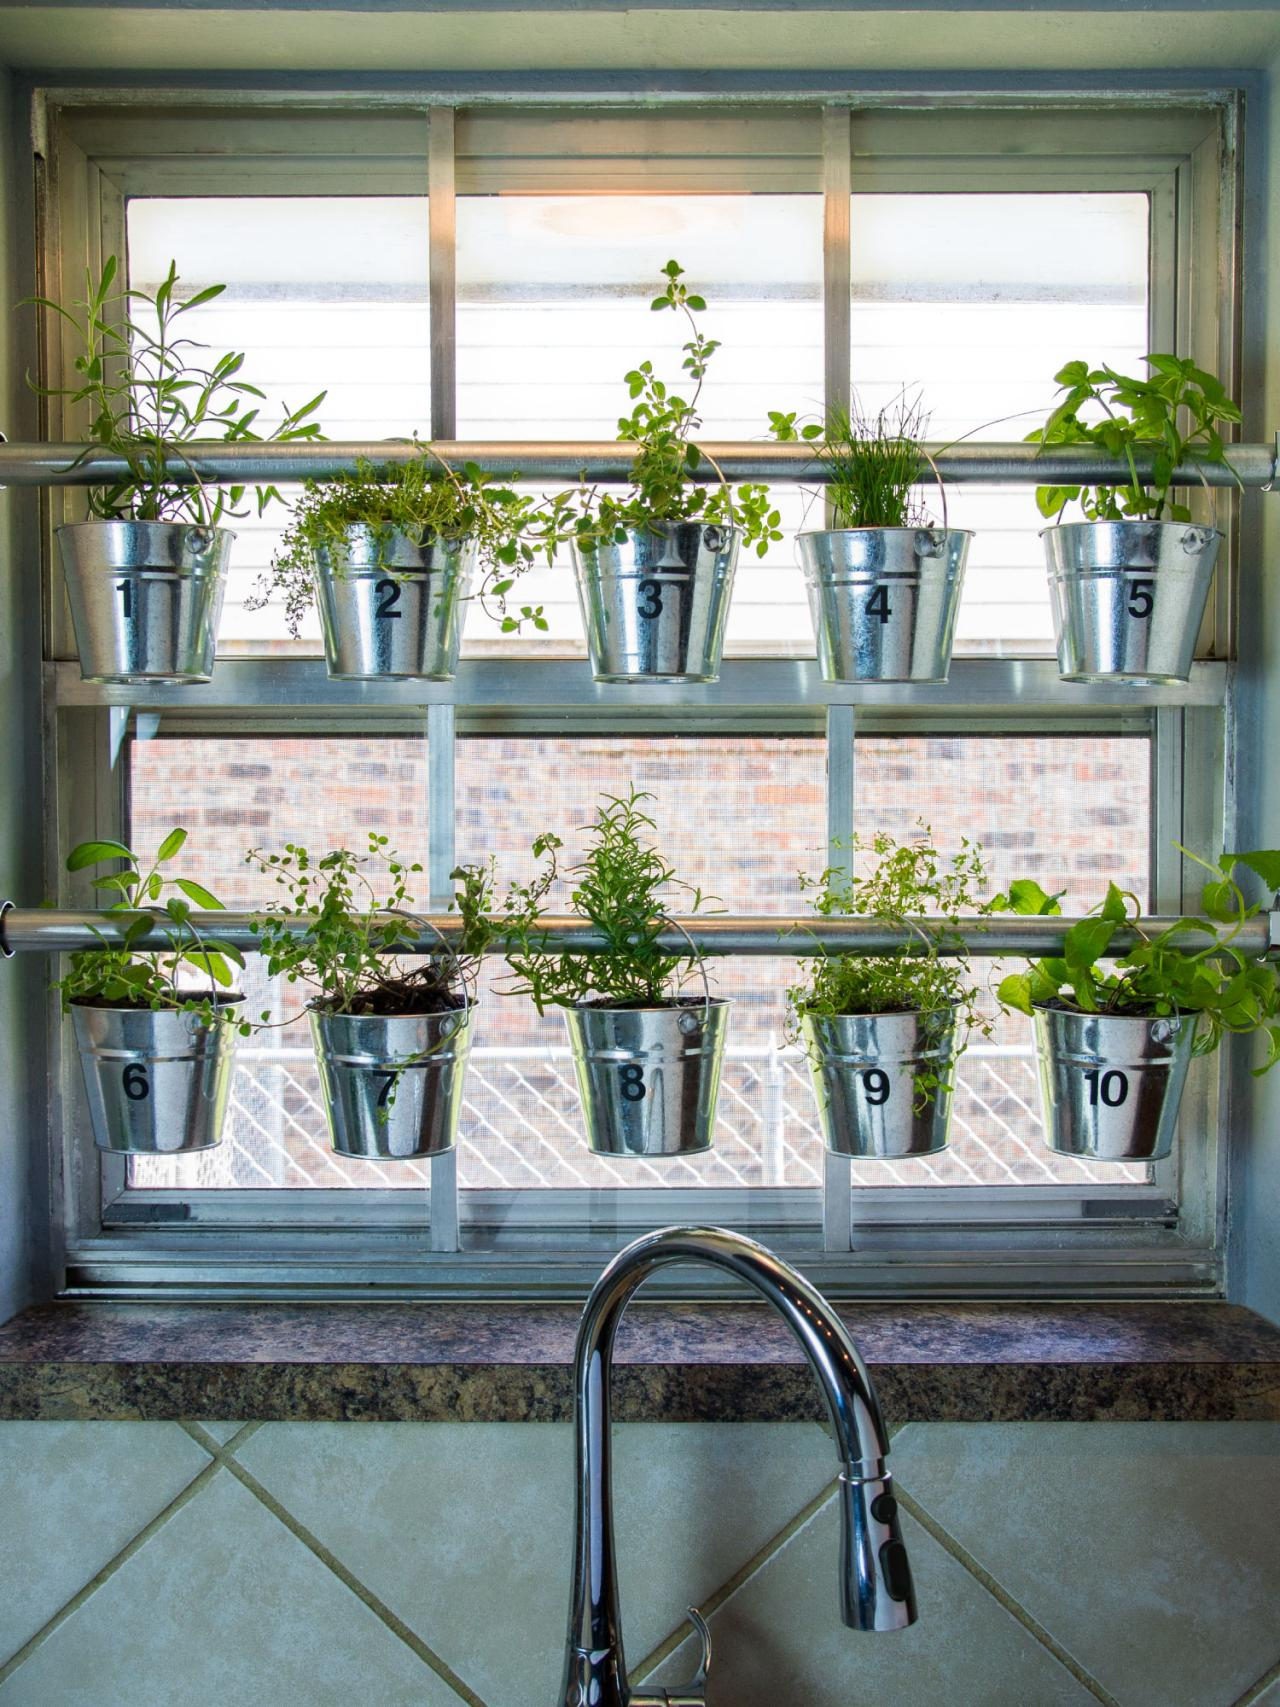 Diy Garden Window Plans 10 Clever Ways To Organize 43 Decorate With Tension Rods Hgtv